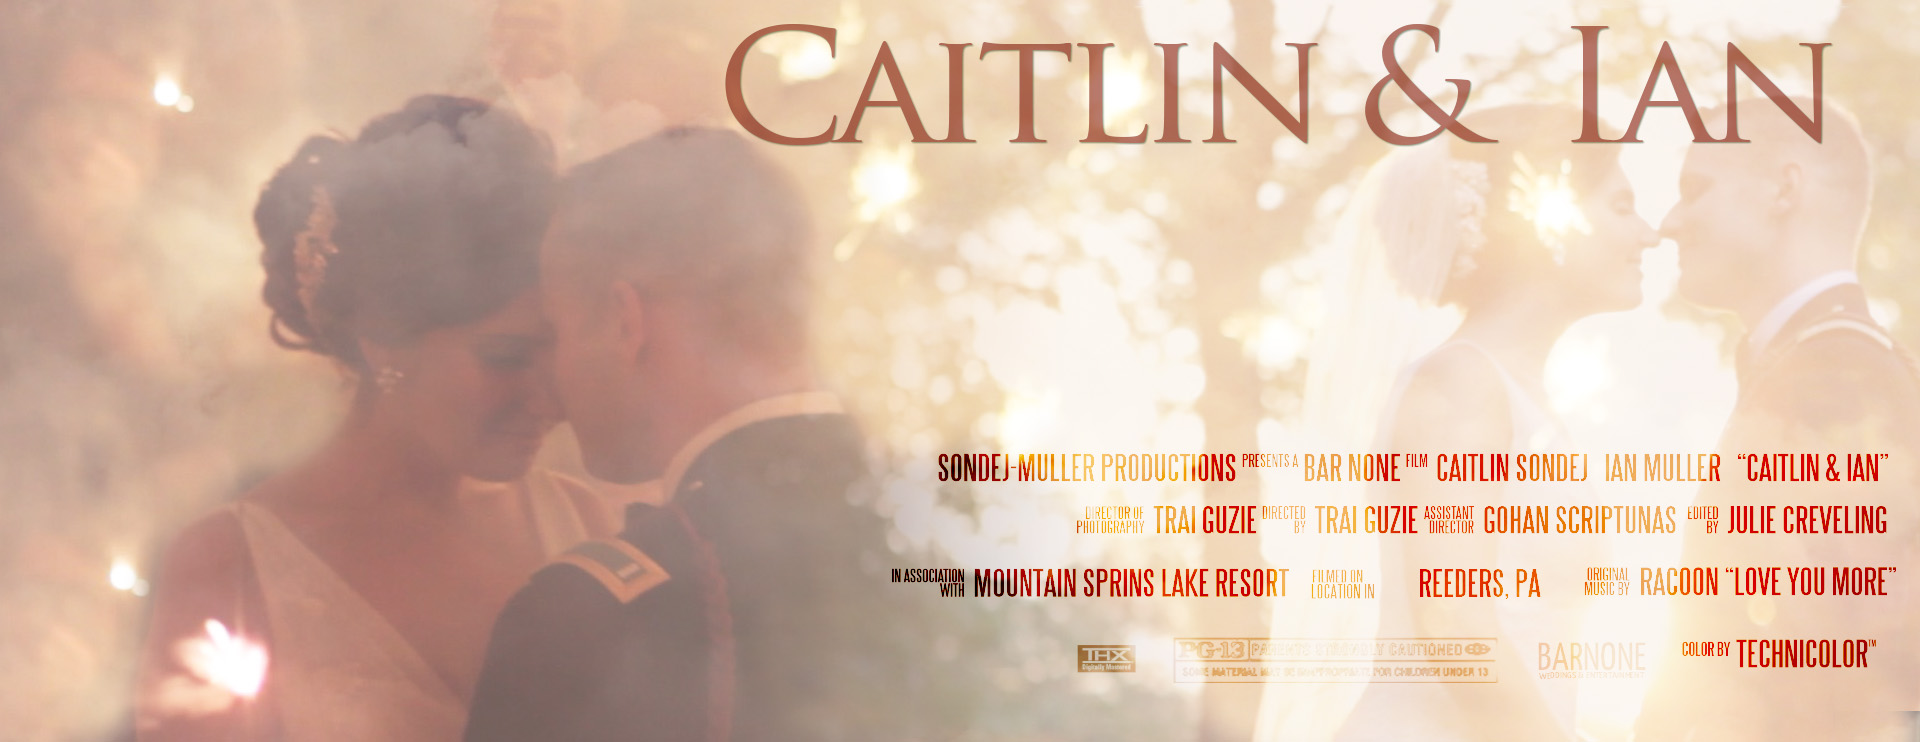 Thumbnail Movie Poster - Mountain Springs Lake Feature Wedding Film - Caitlin & Ian